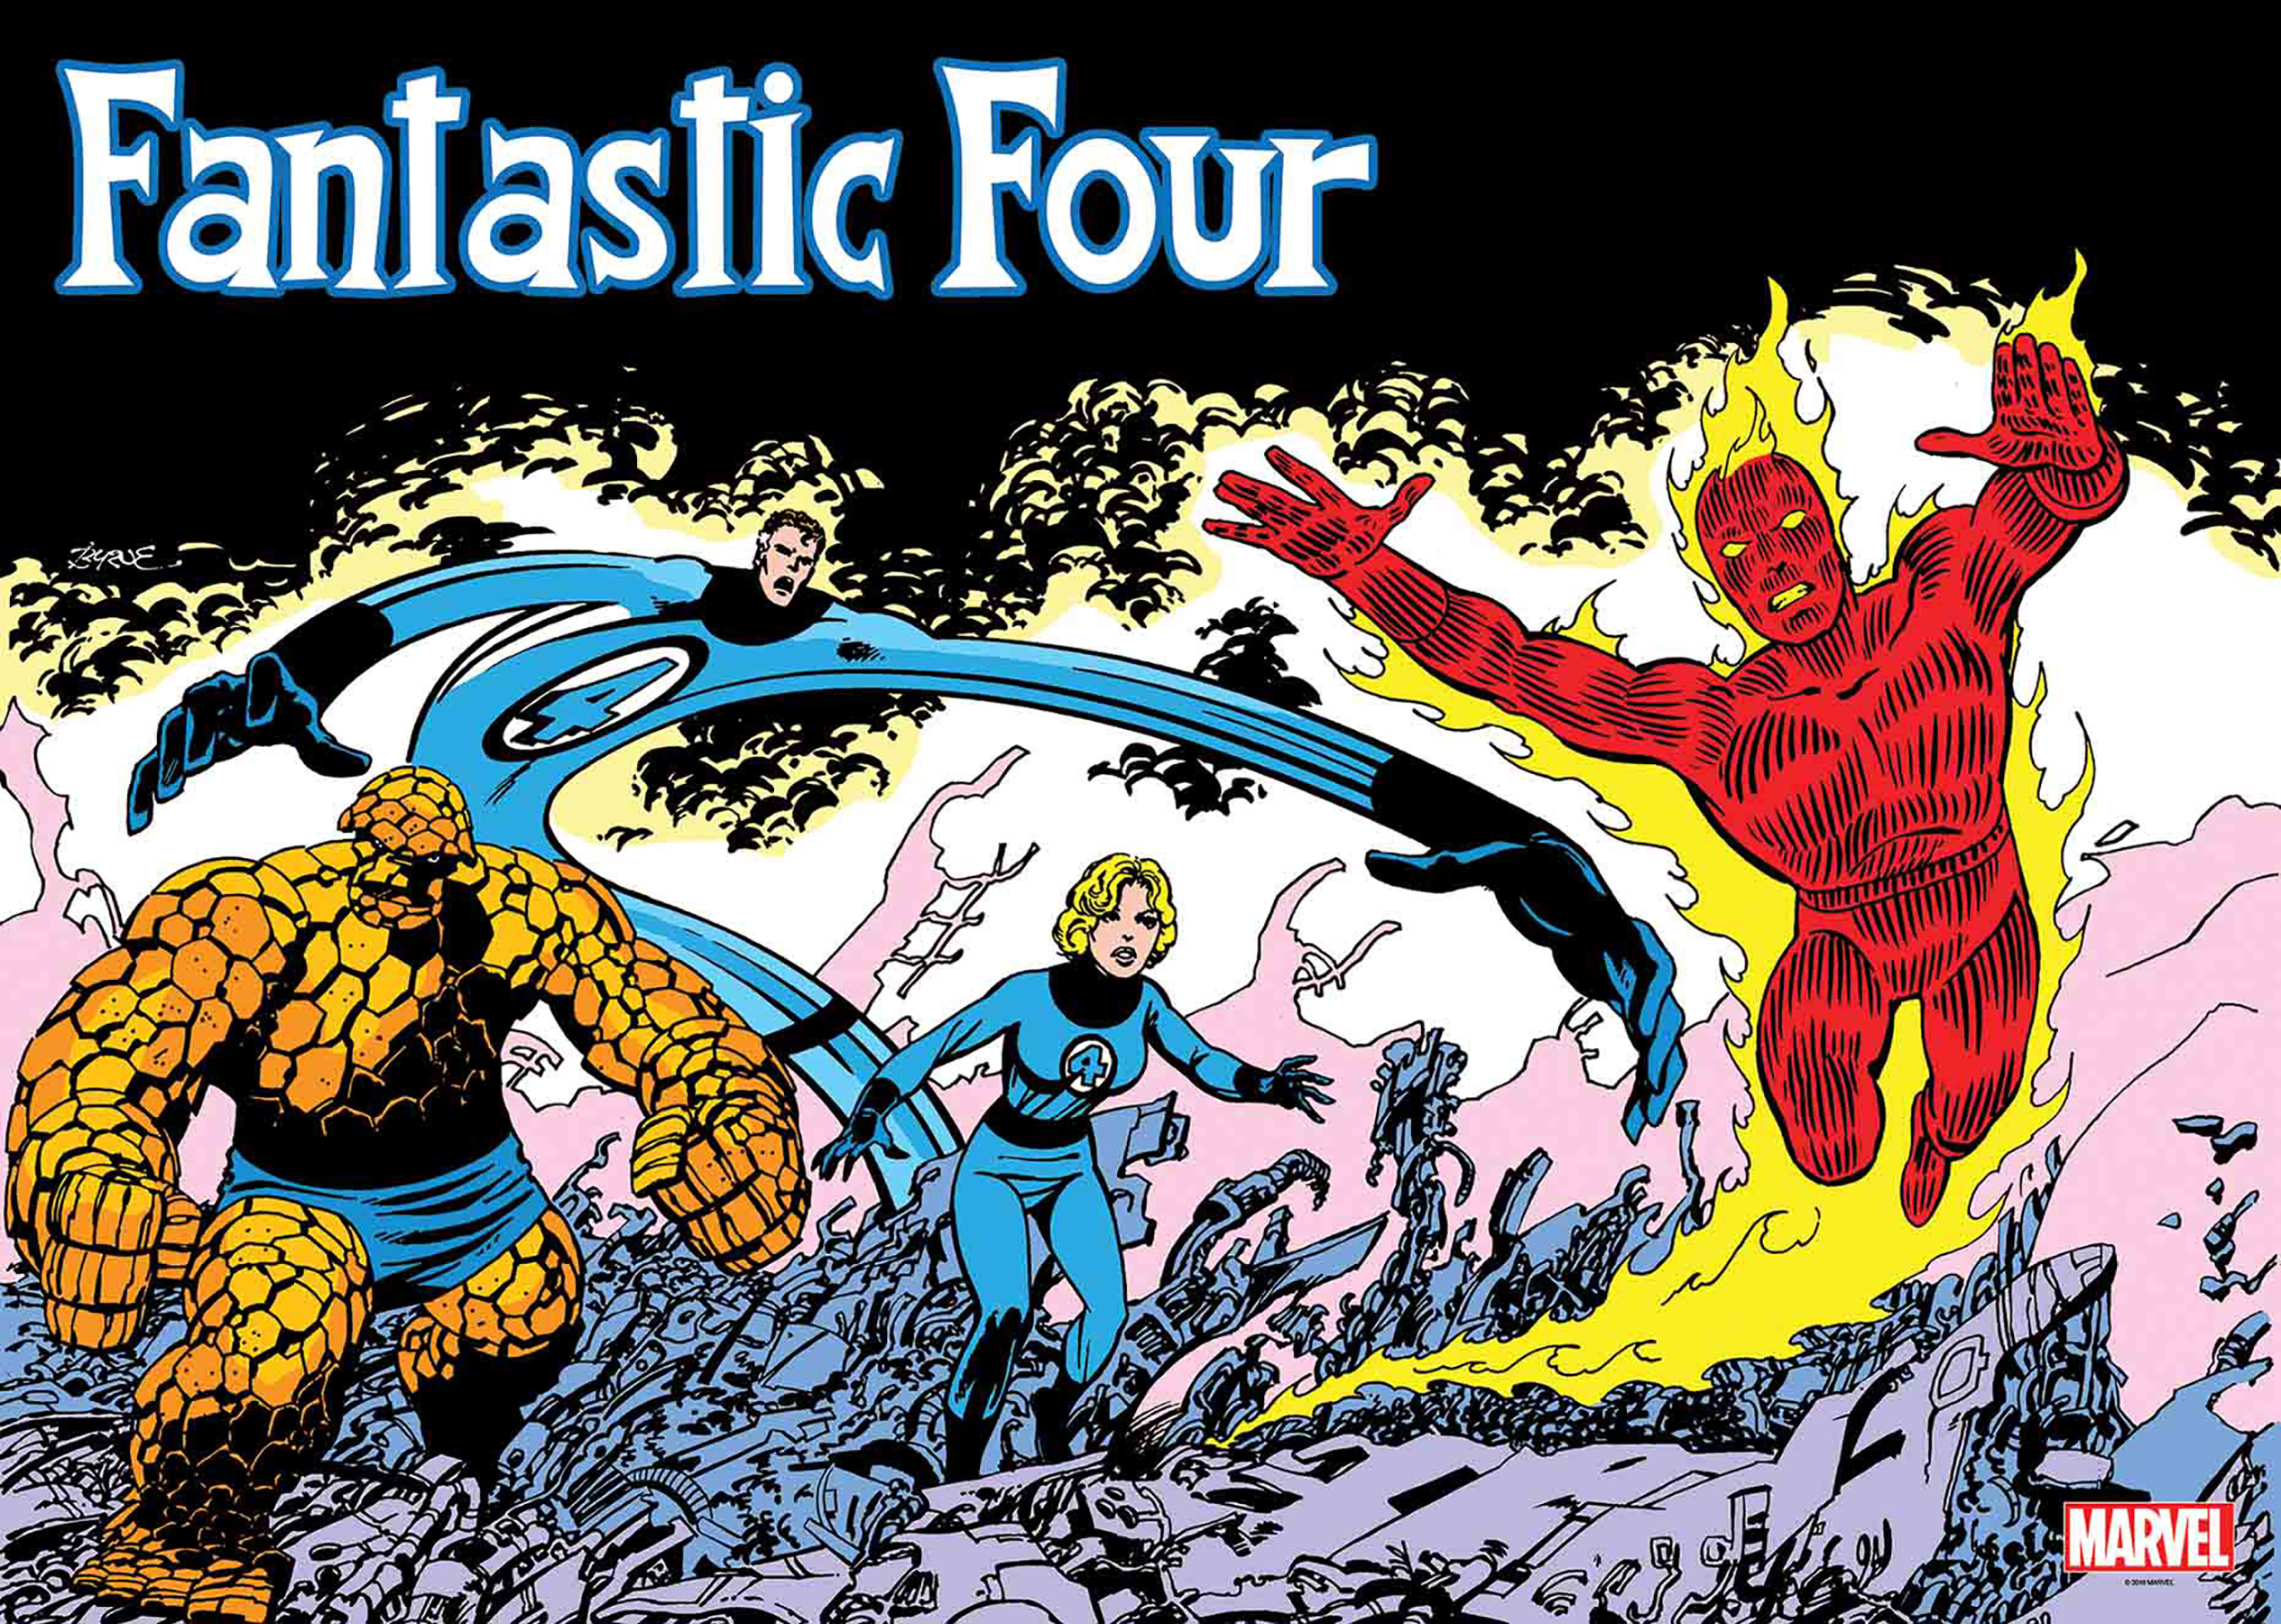 FANTASTIC FOUR OVERSIZED BY BYRNE VINYL POSTER